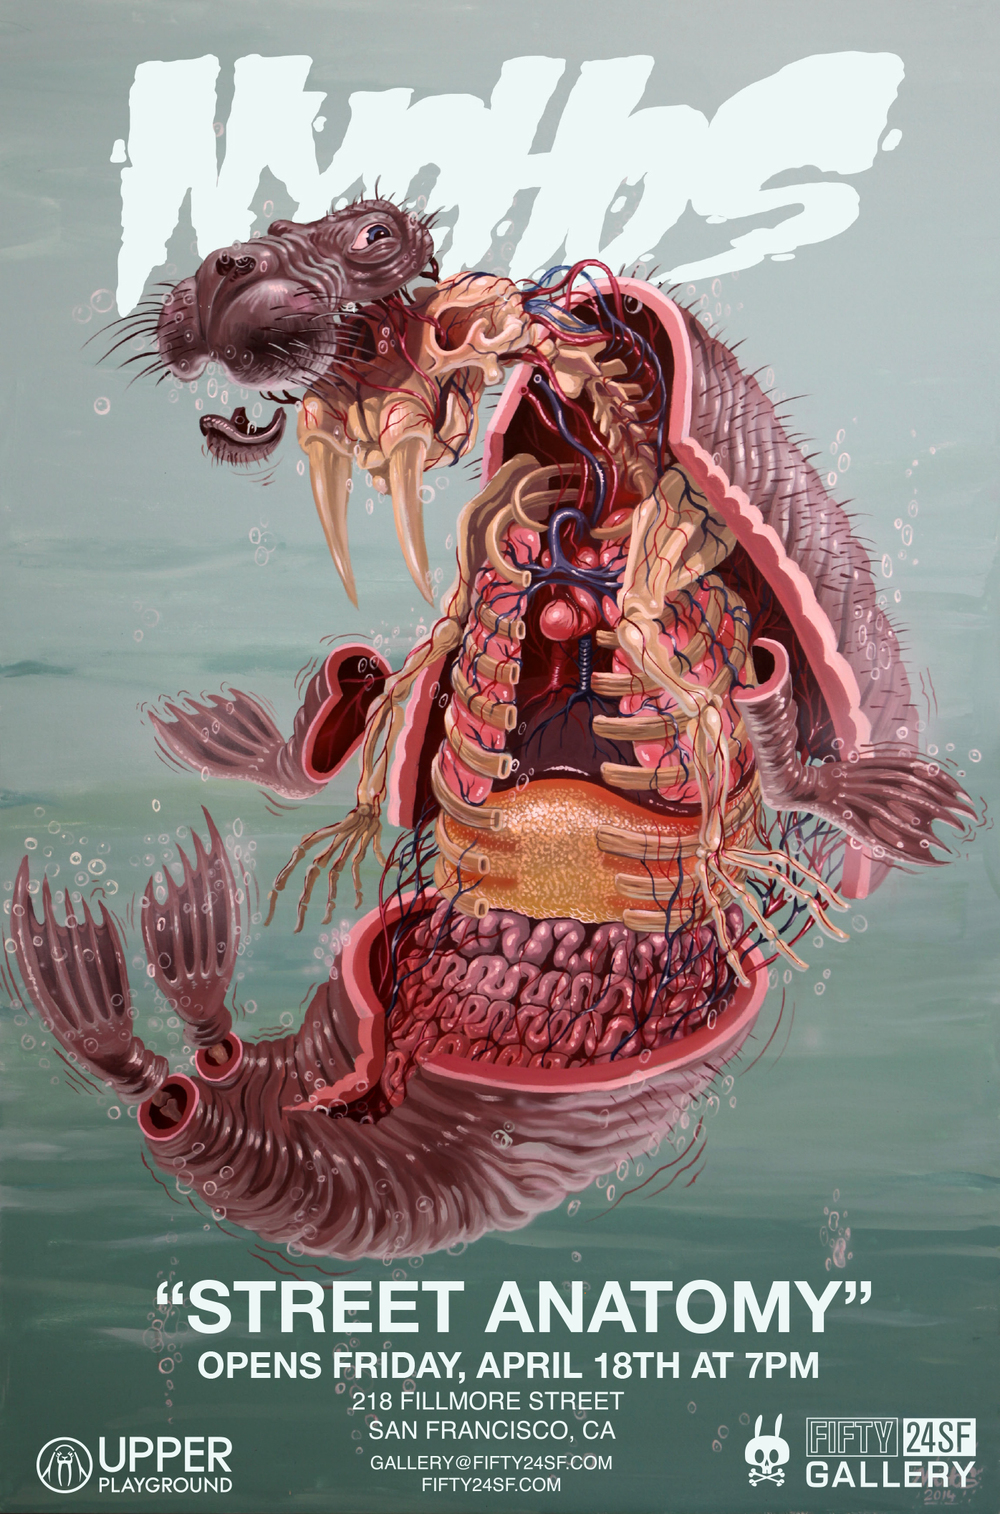 Nychos-fifty24sf-upper-playground-street-anatomy.jpg